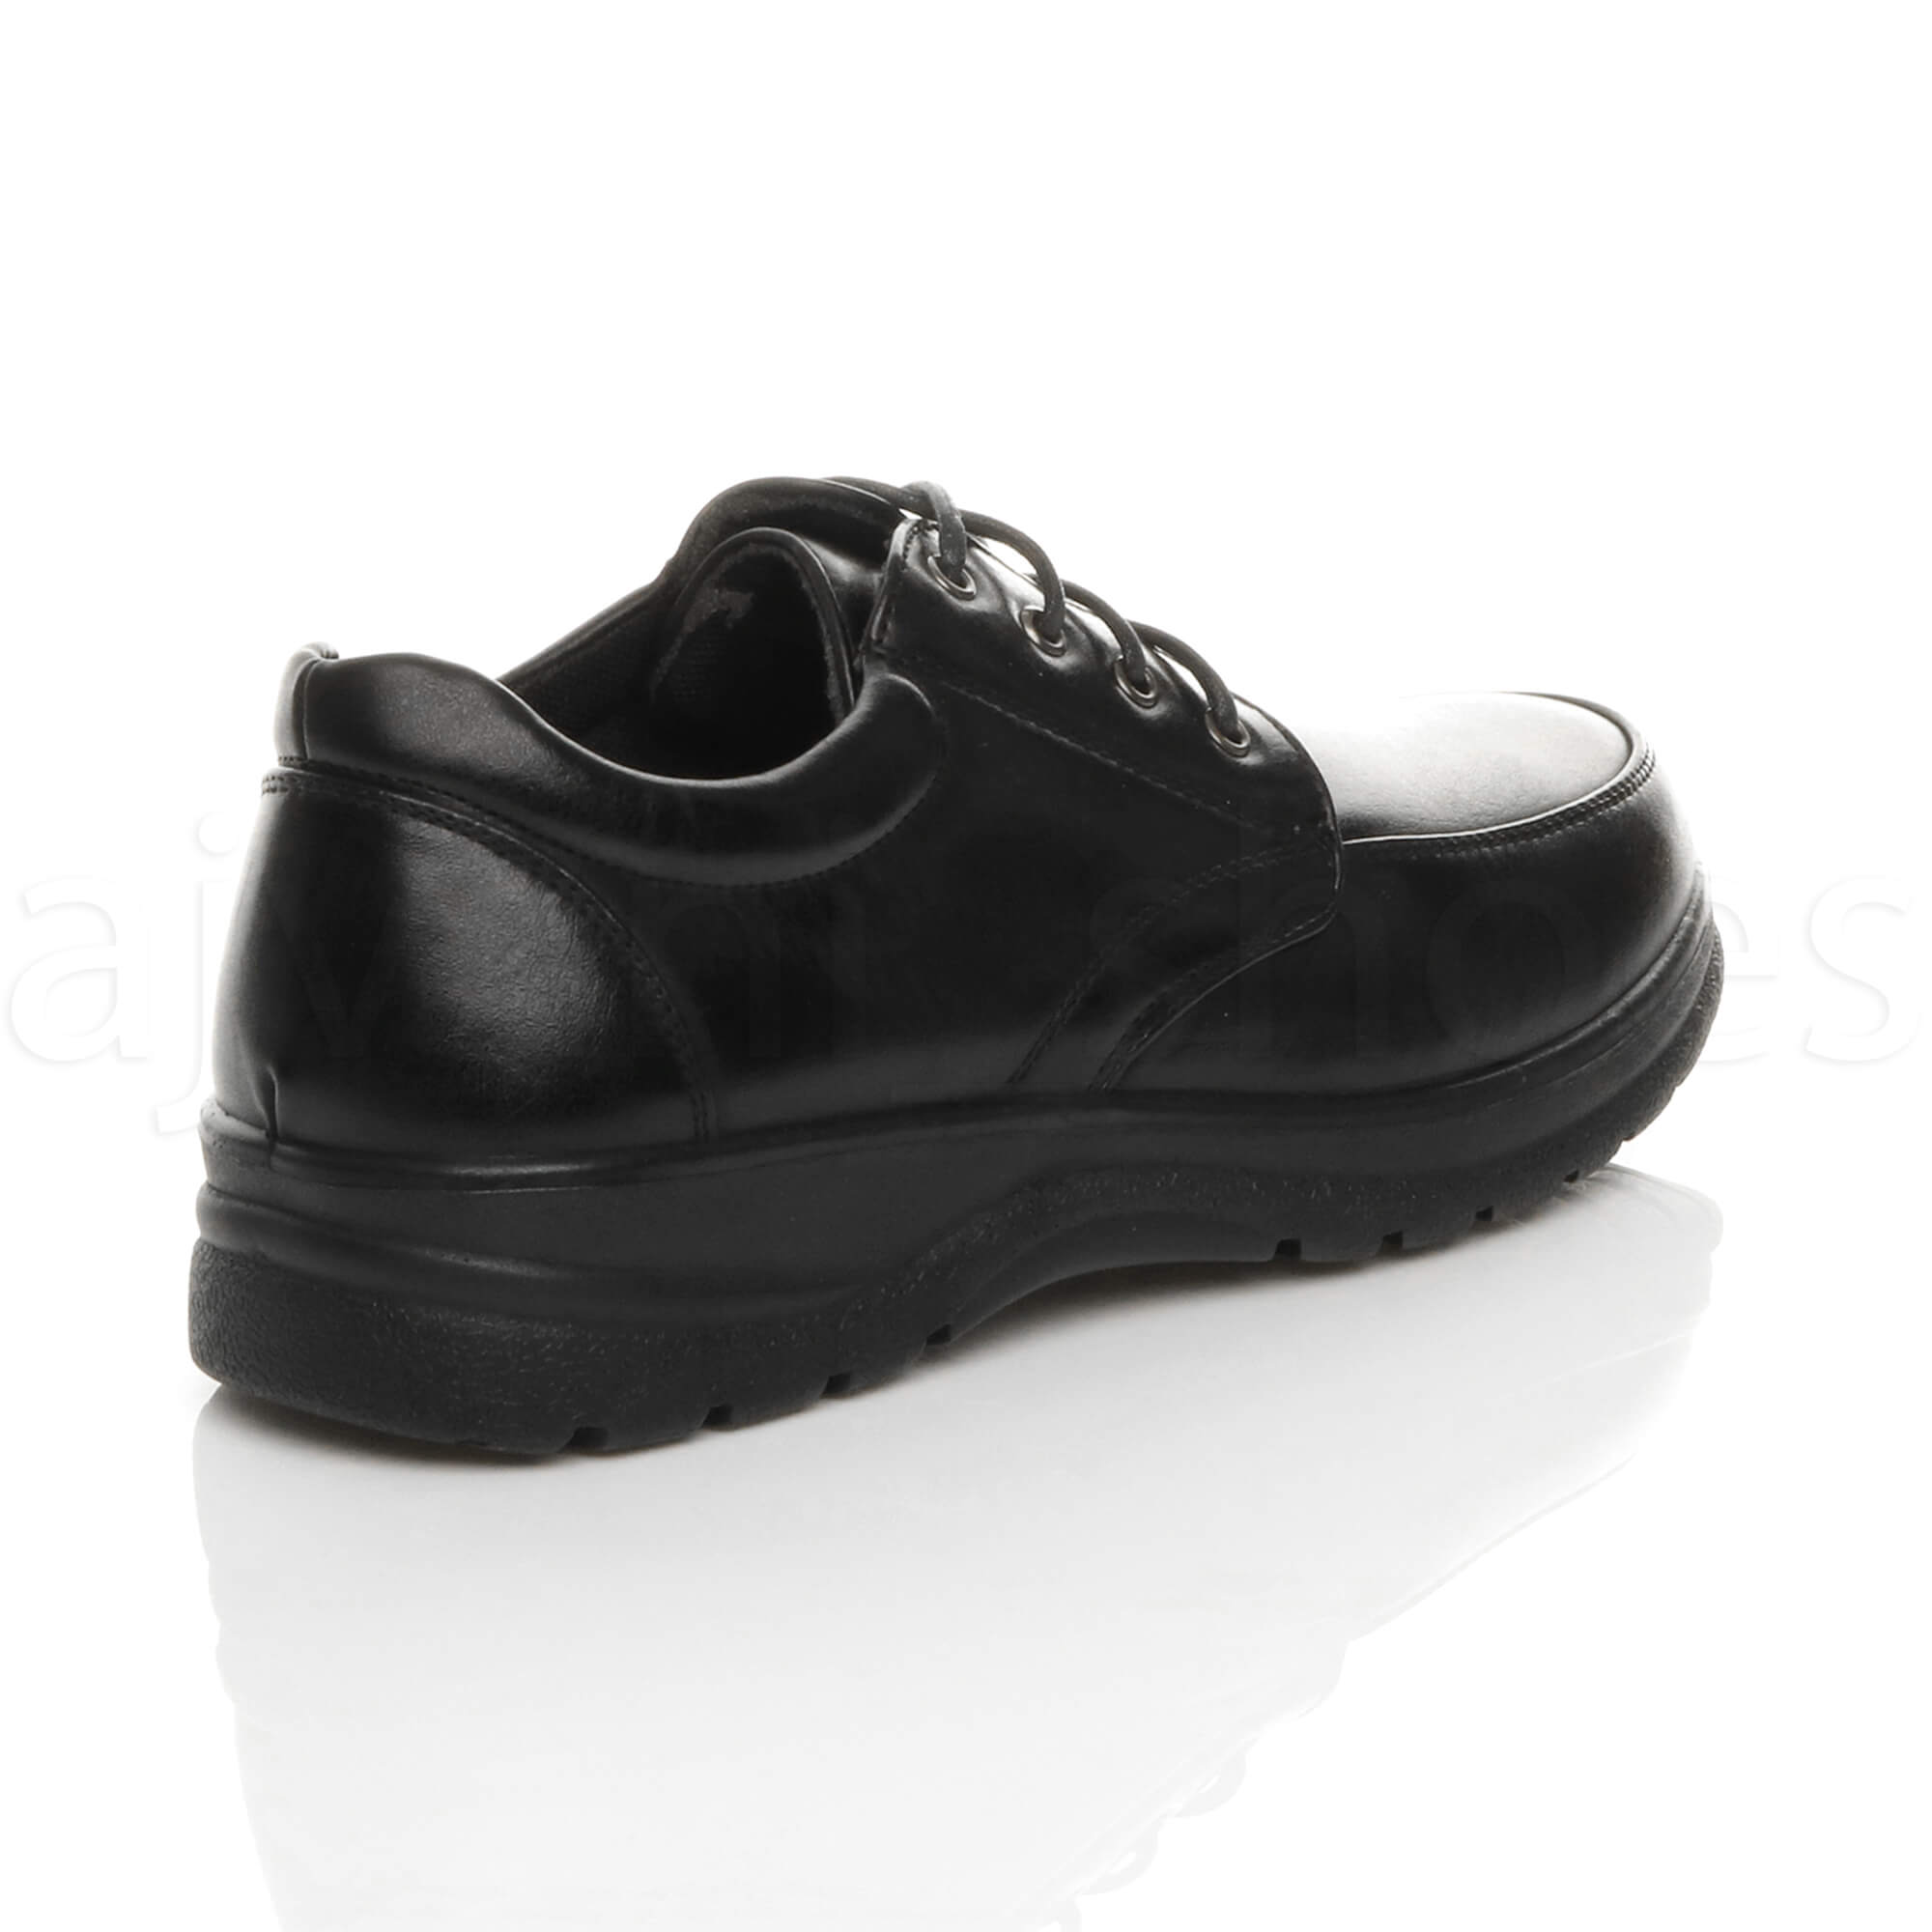 MENS-LACE-UP-CASUAL-MEMORY-FOAM-INSOLE-COMFORT-CUSHIONED-WORK-SHOES-SIZE thumbnail 5